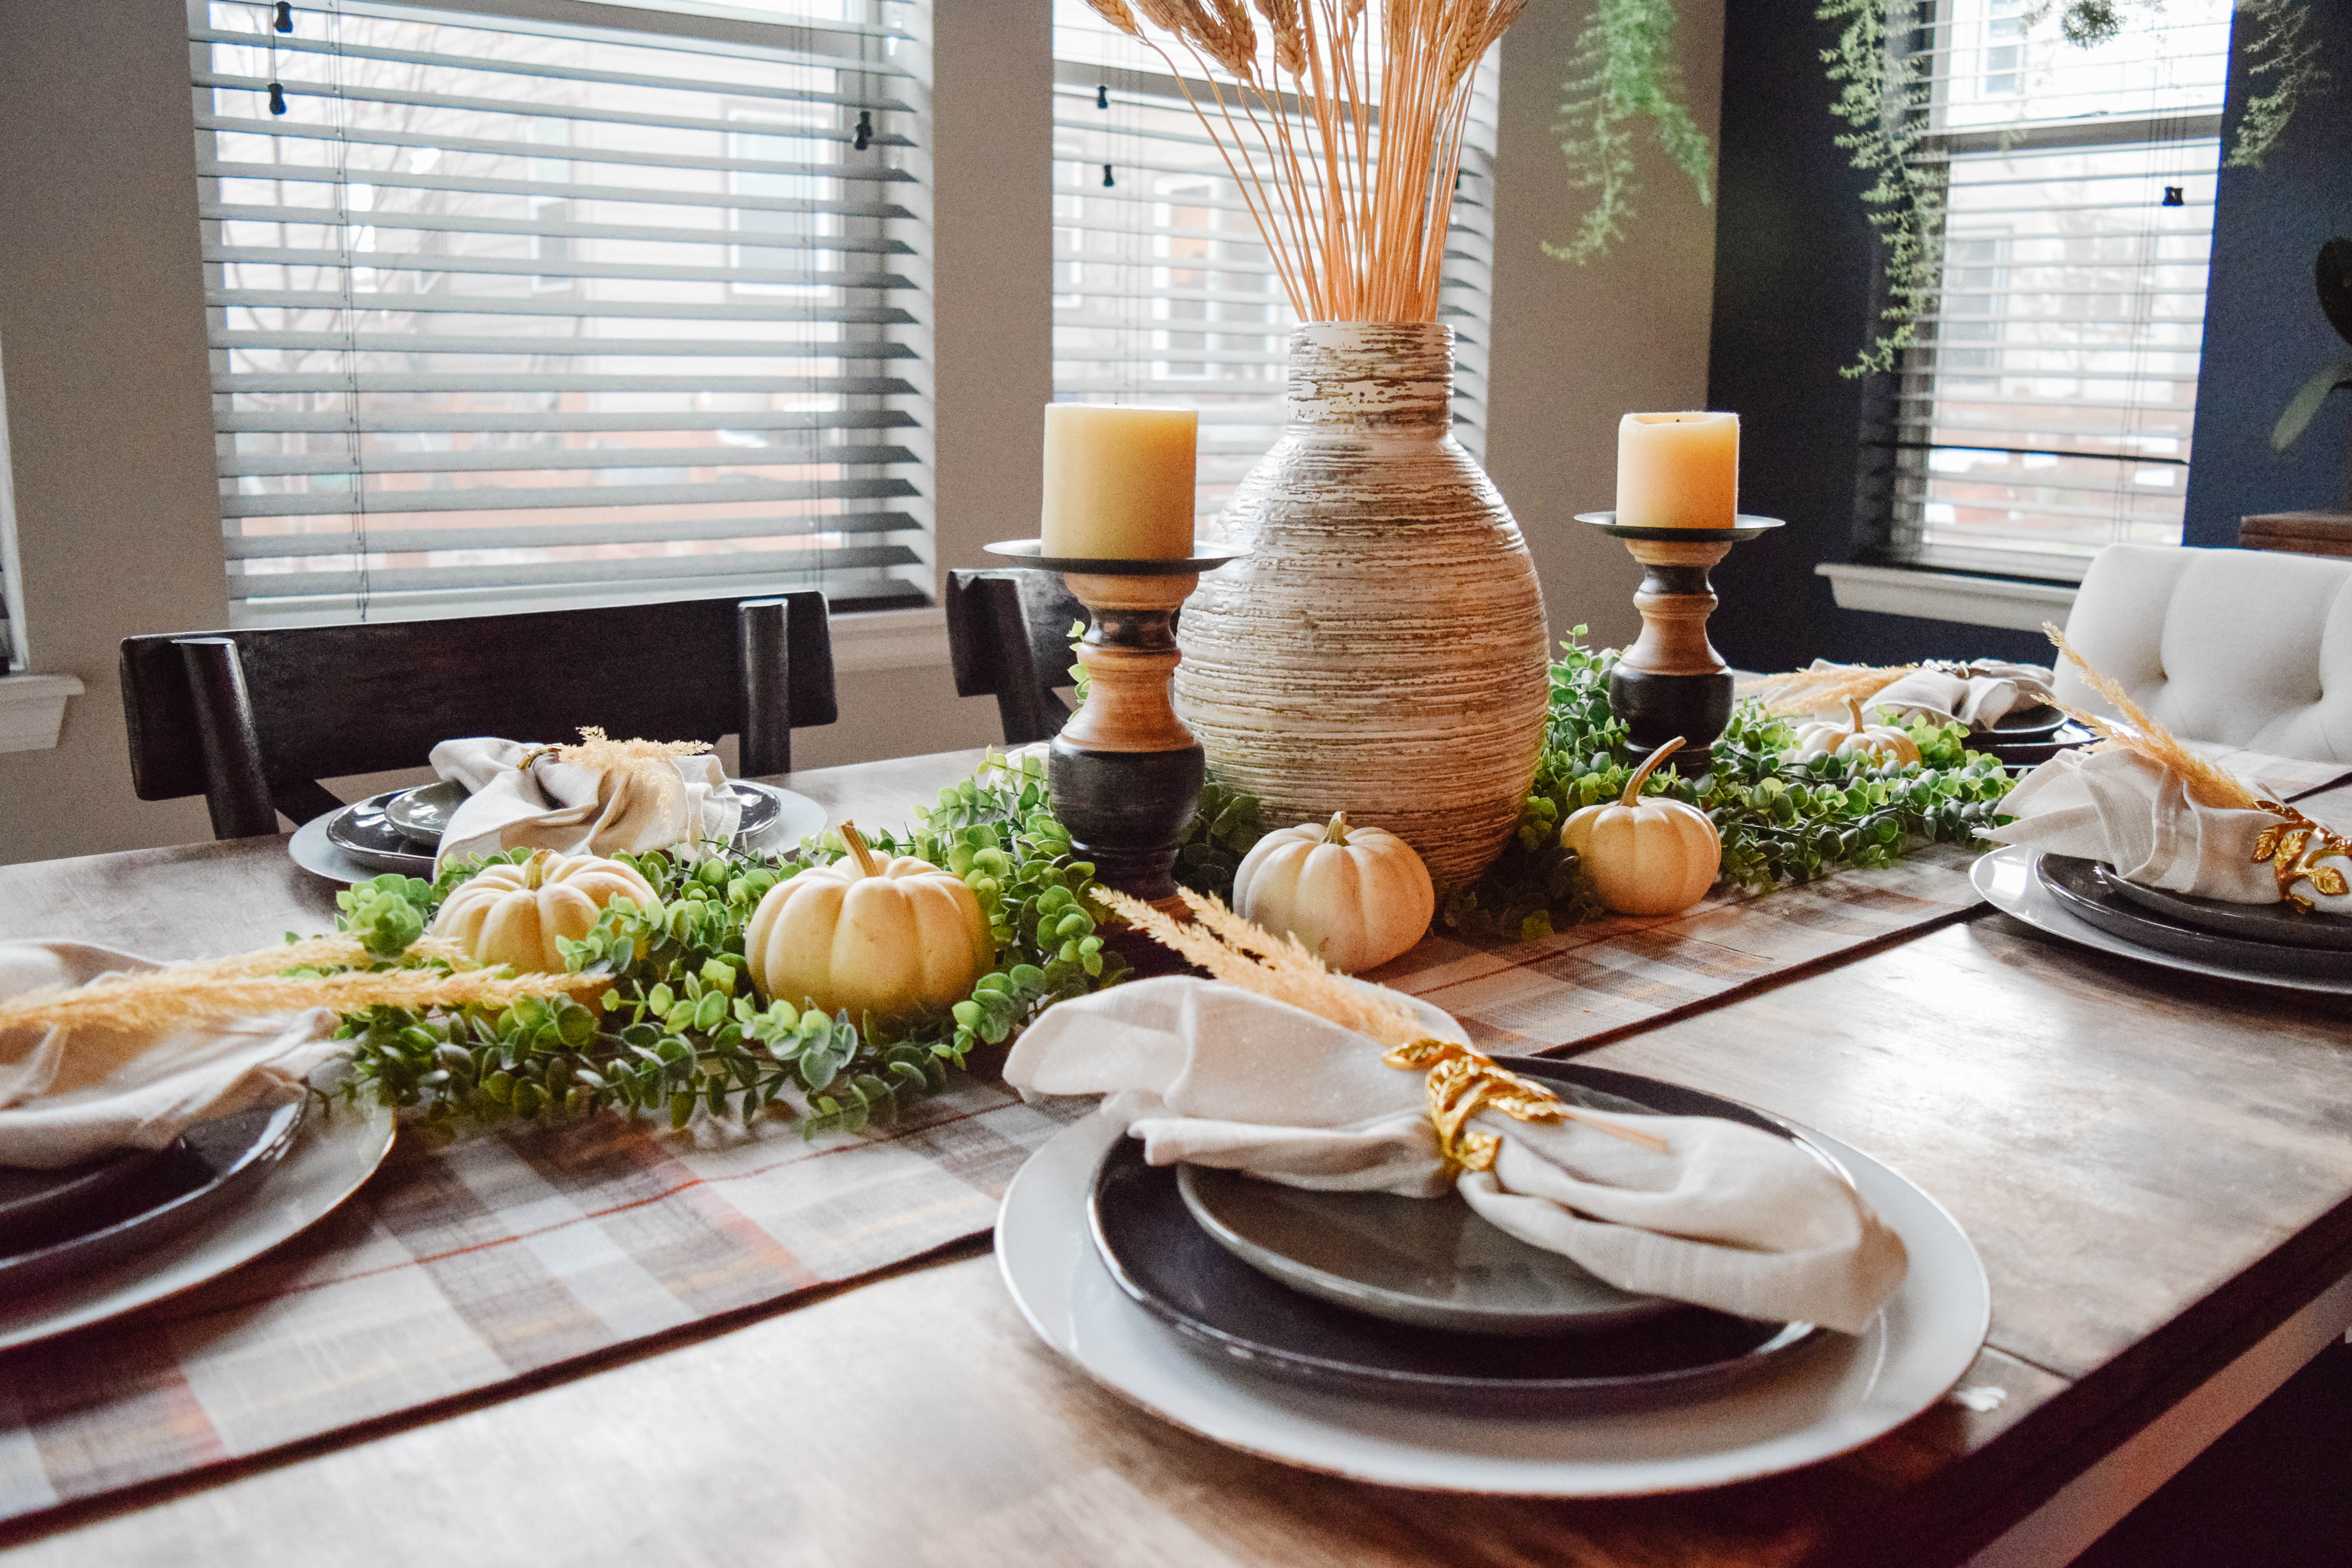 Fall and Thanksgiving Tablescapes with green and wood color scheme, candle sticks and large vase with wheat